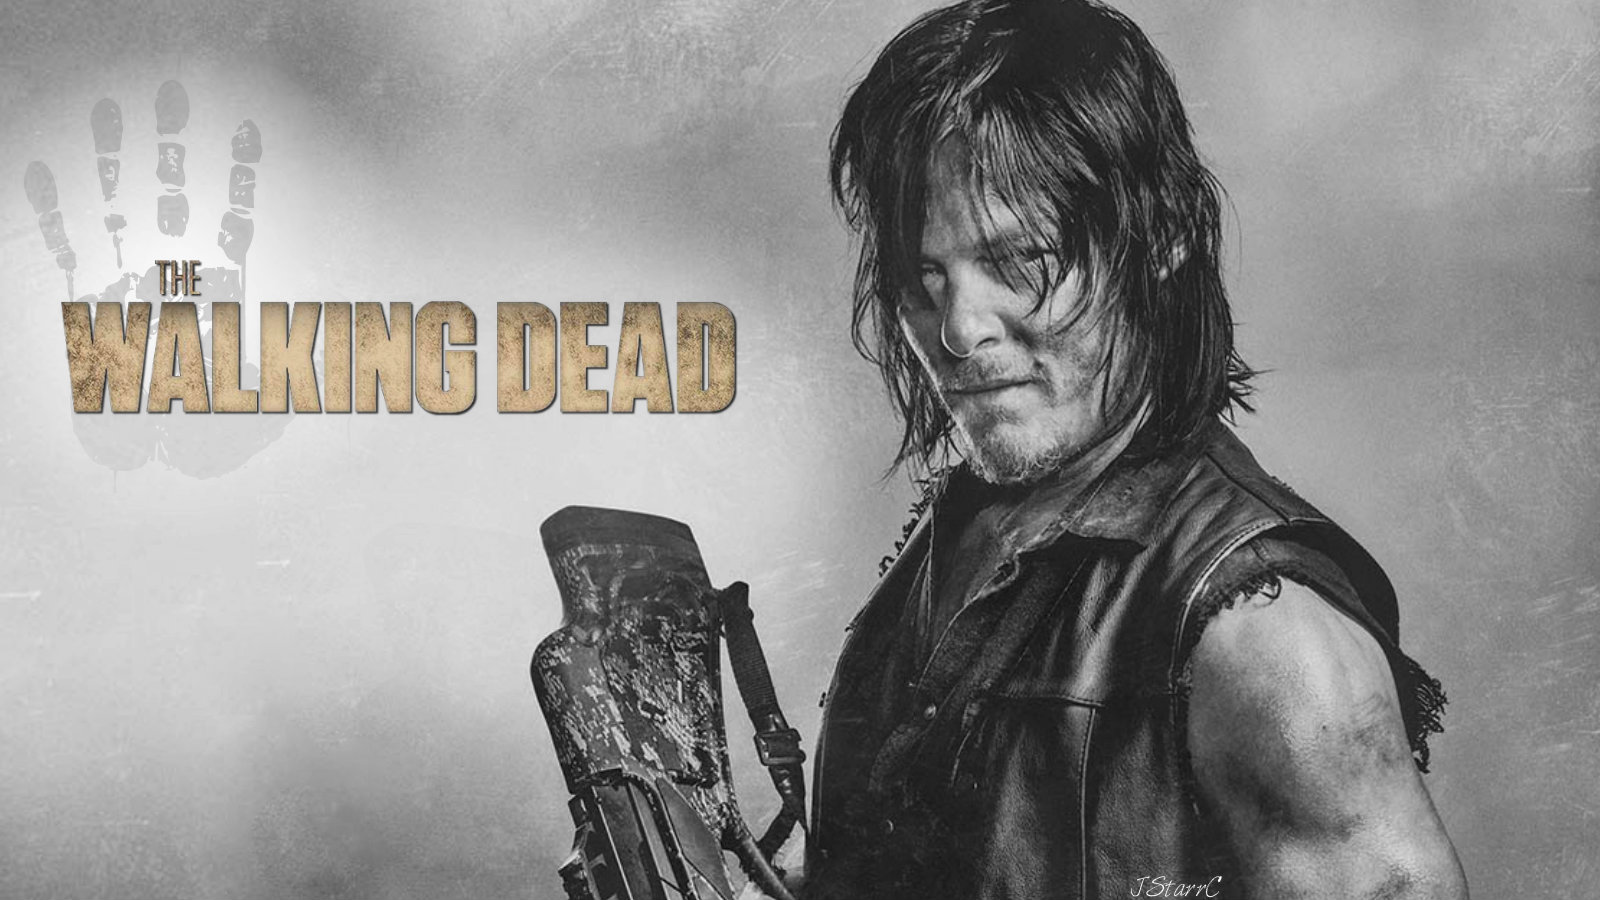 Daryl Dixon Walking Dead Hd Daryl 32524 Hd Wallpaper